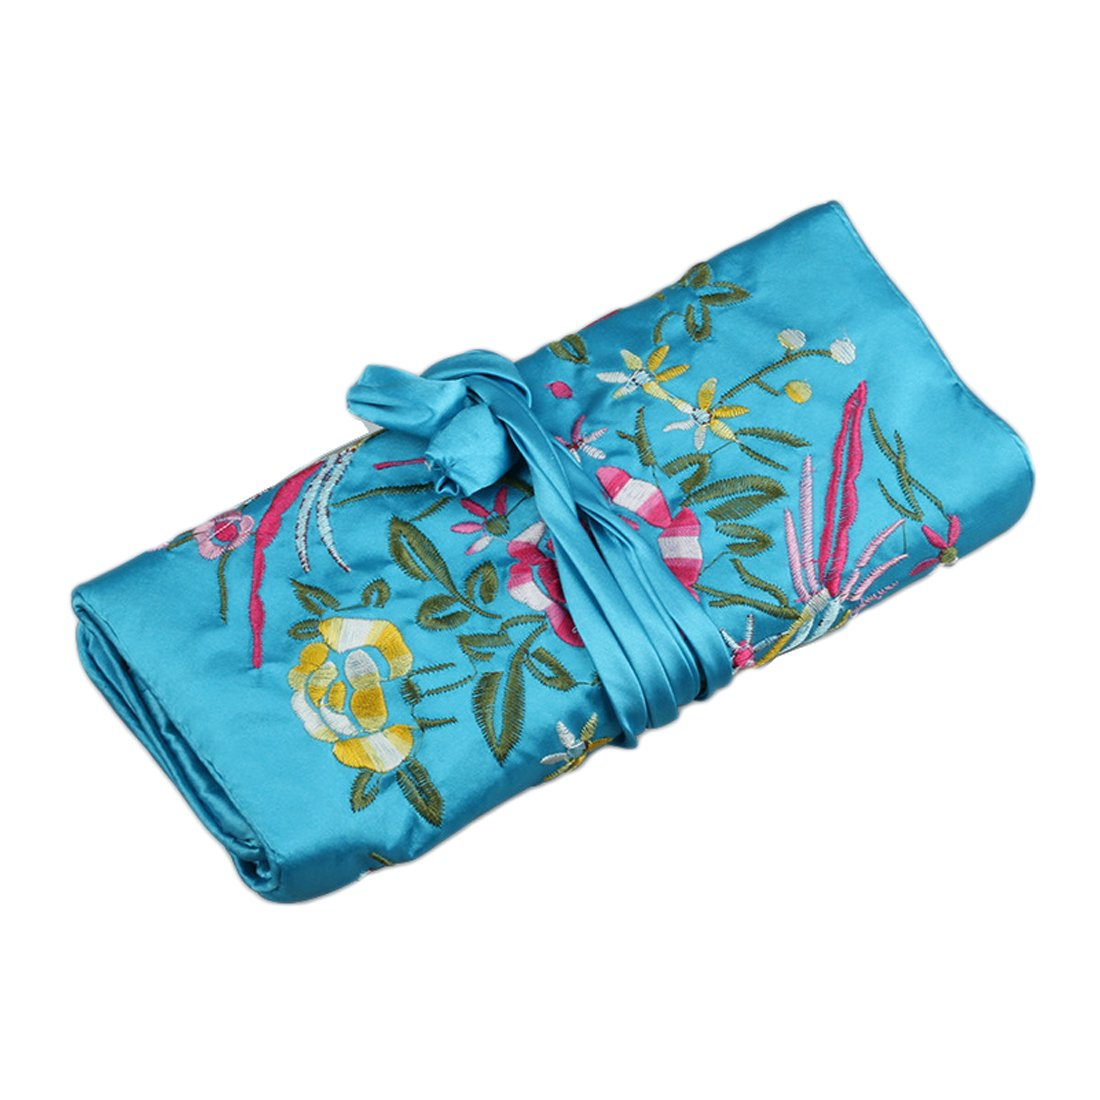 55711c323 Get Quotations · WEI LONG@Jewelry Roll, Travel Jewelry Roll Bag,Silk  Embroidery Brocade Jewelry Organizer